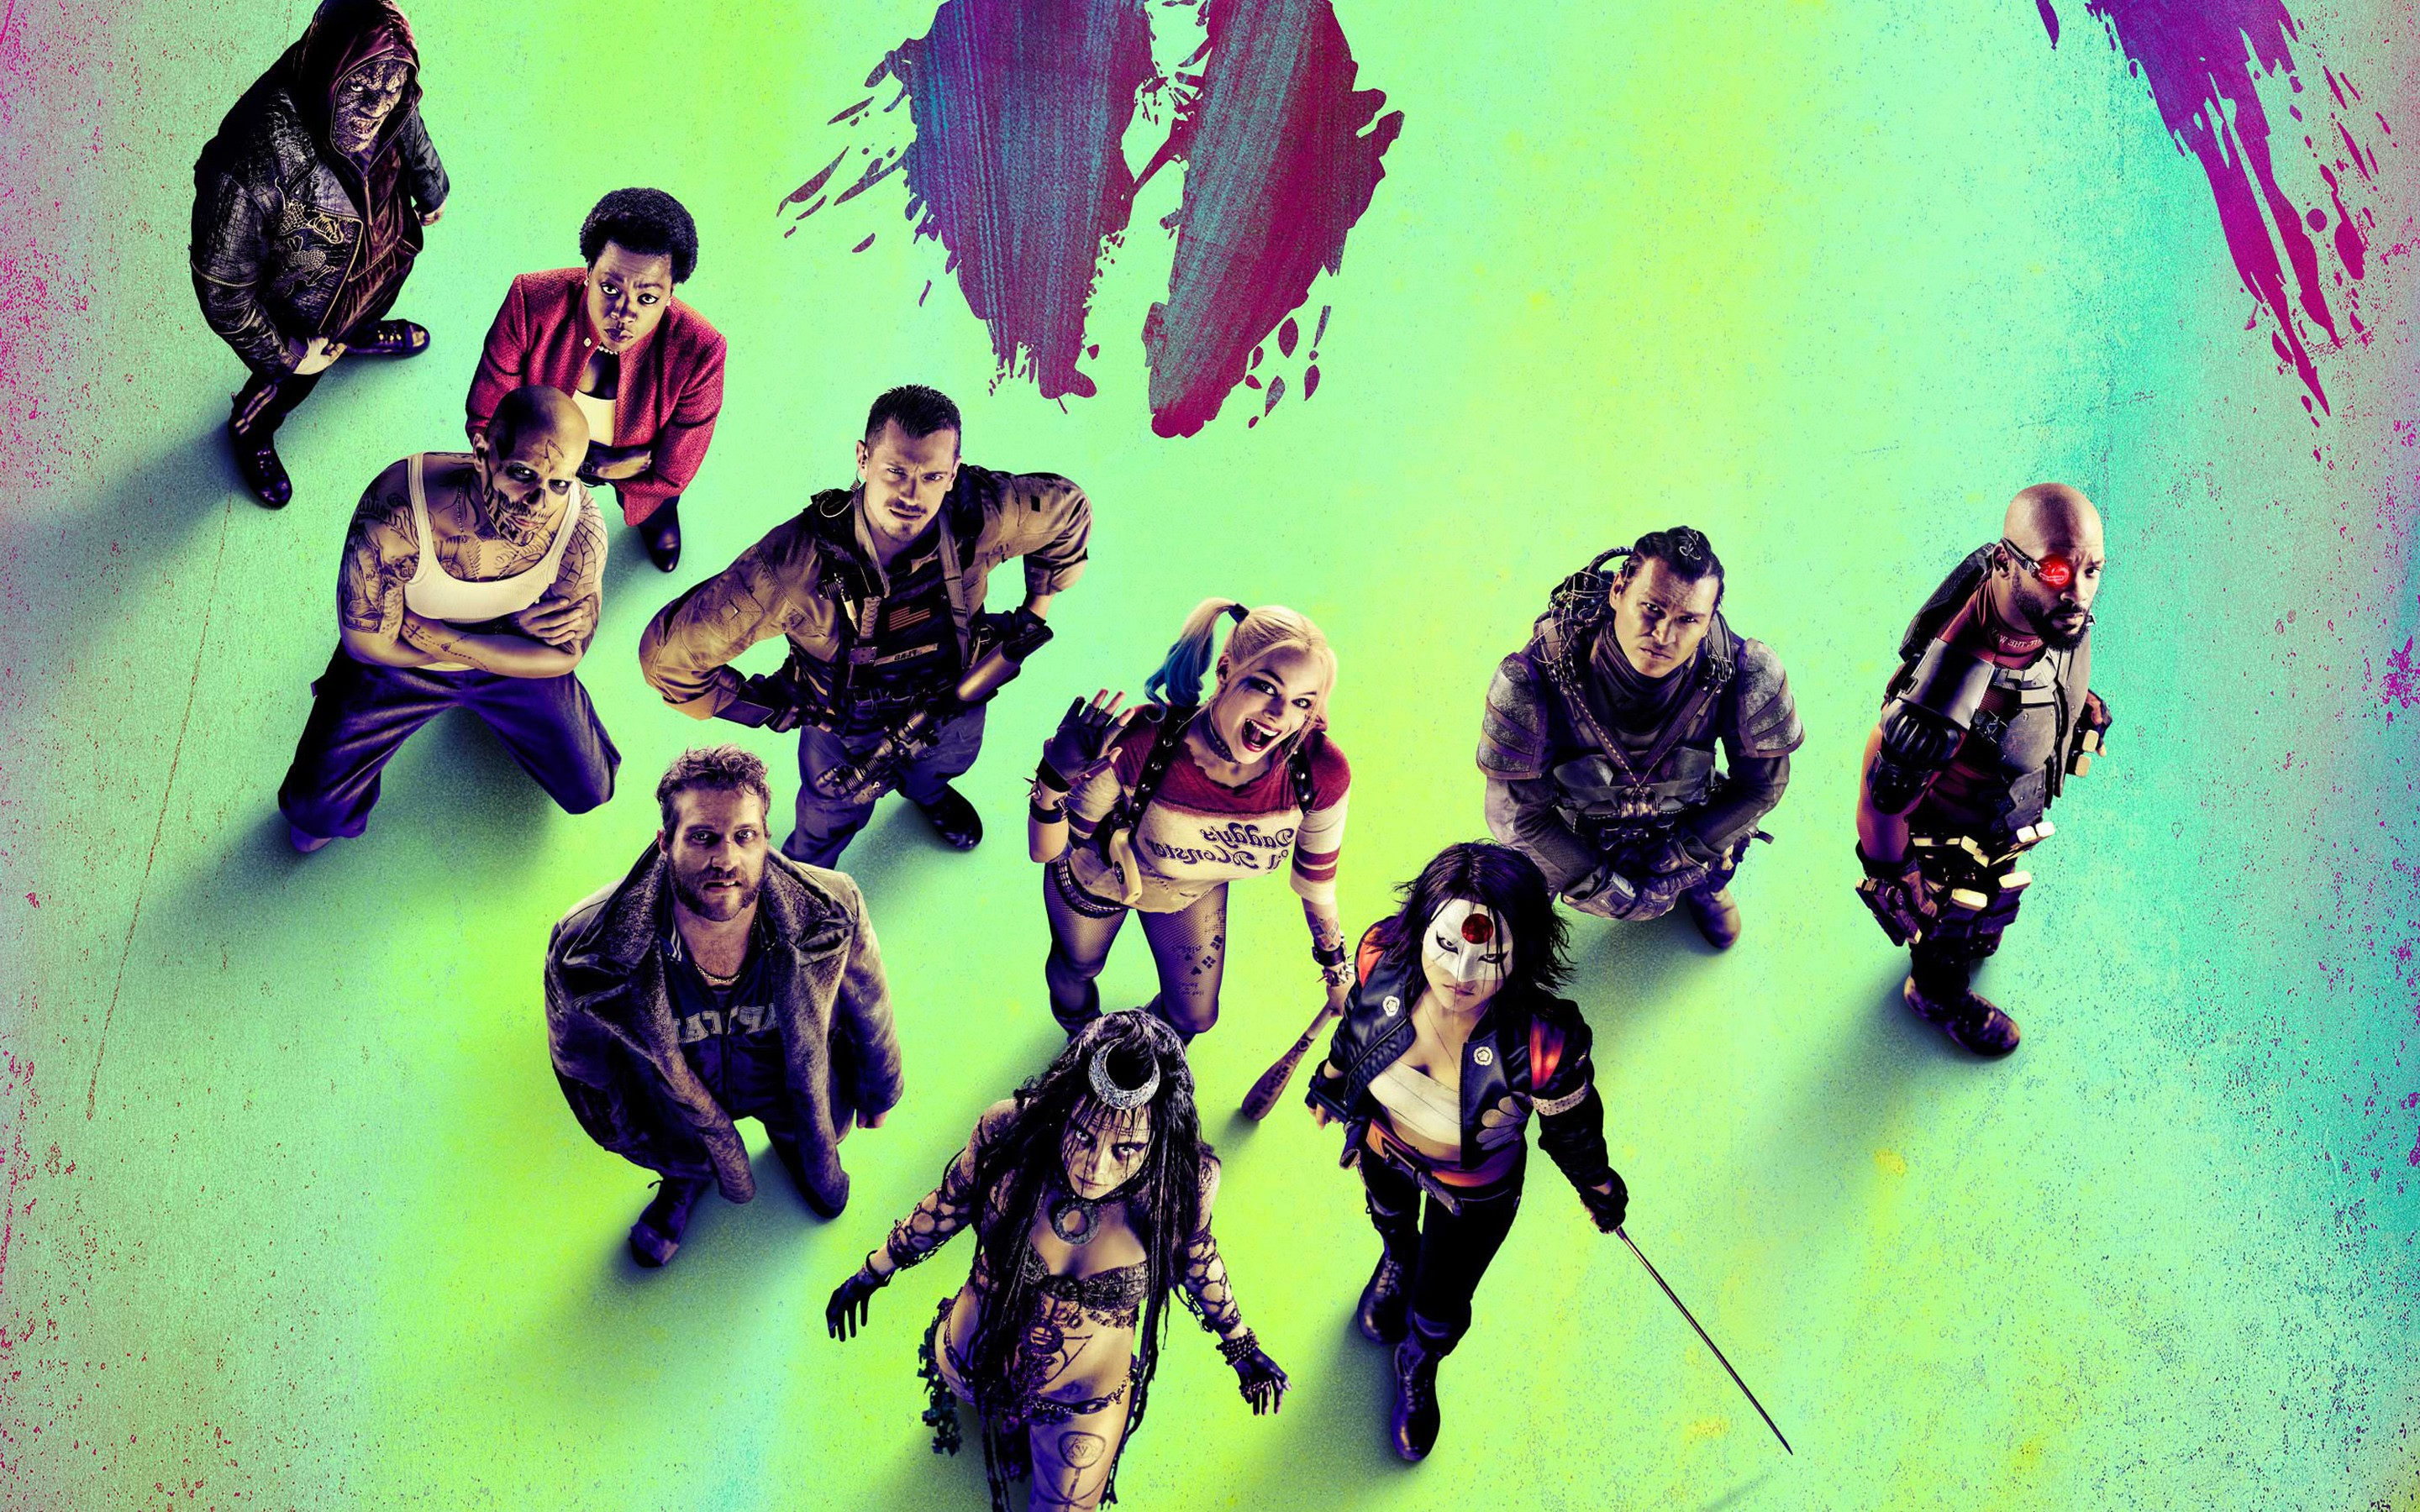 Suicide Squad Wallpapers Full HD MLT9WO1   4USkY 2880x1800